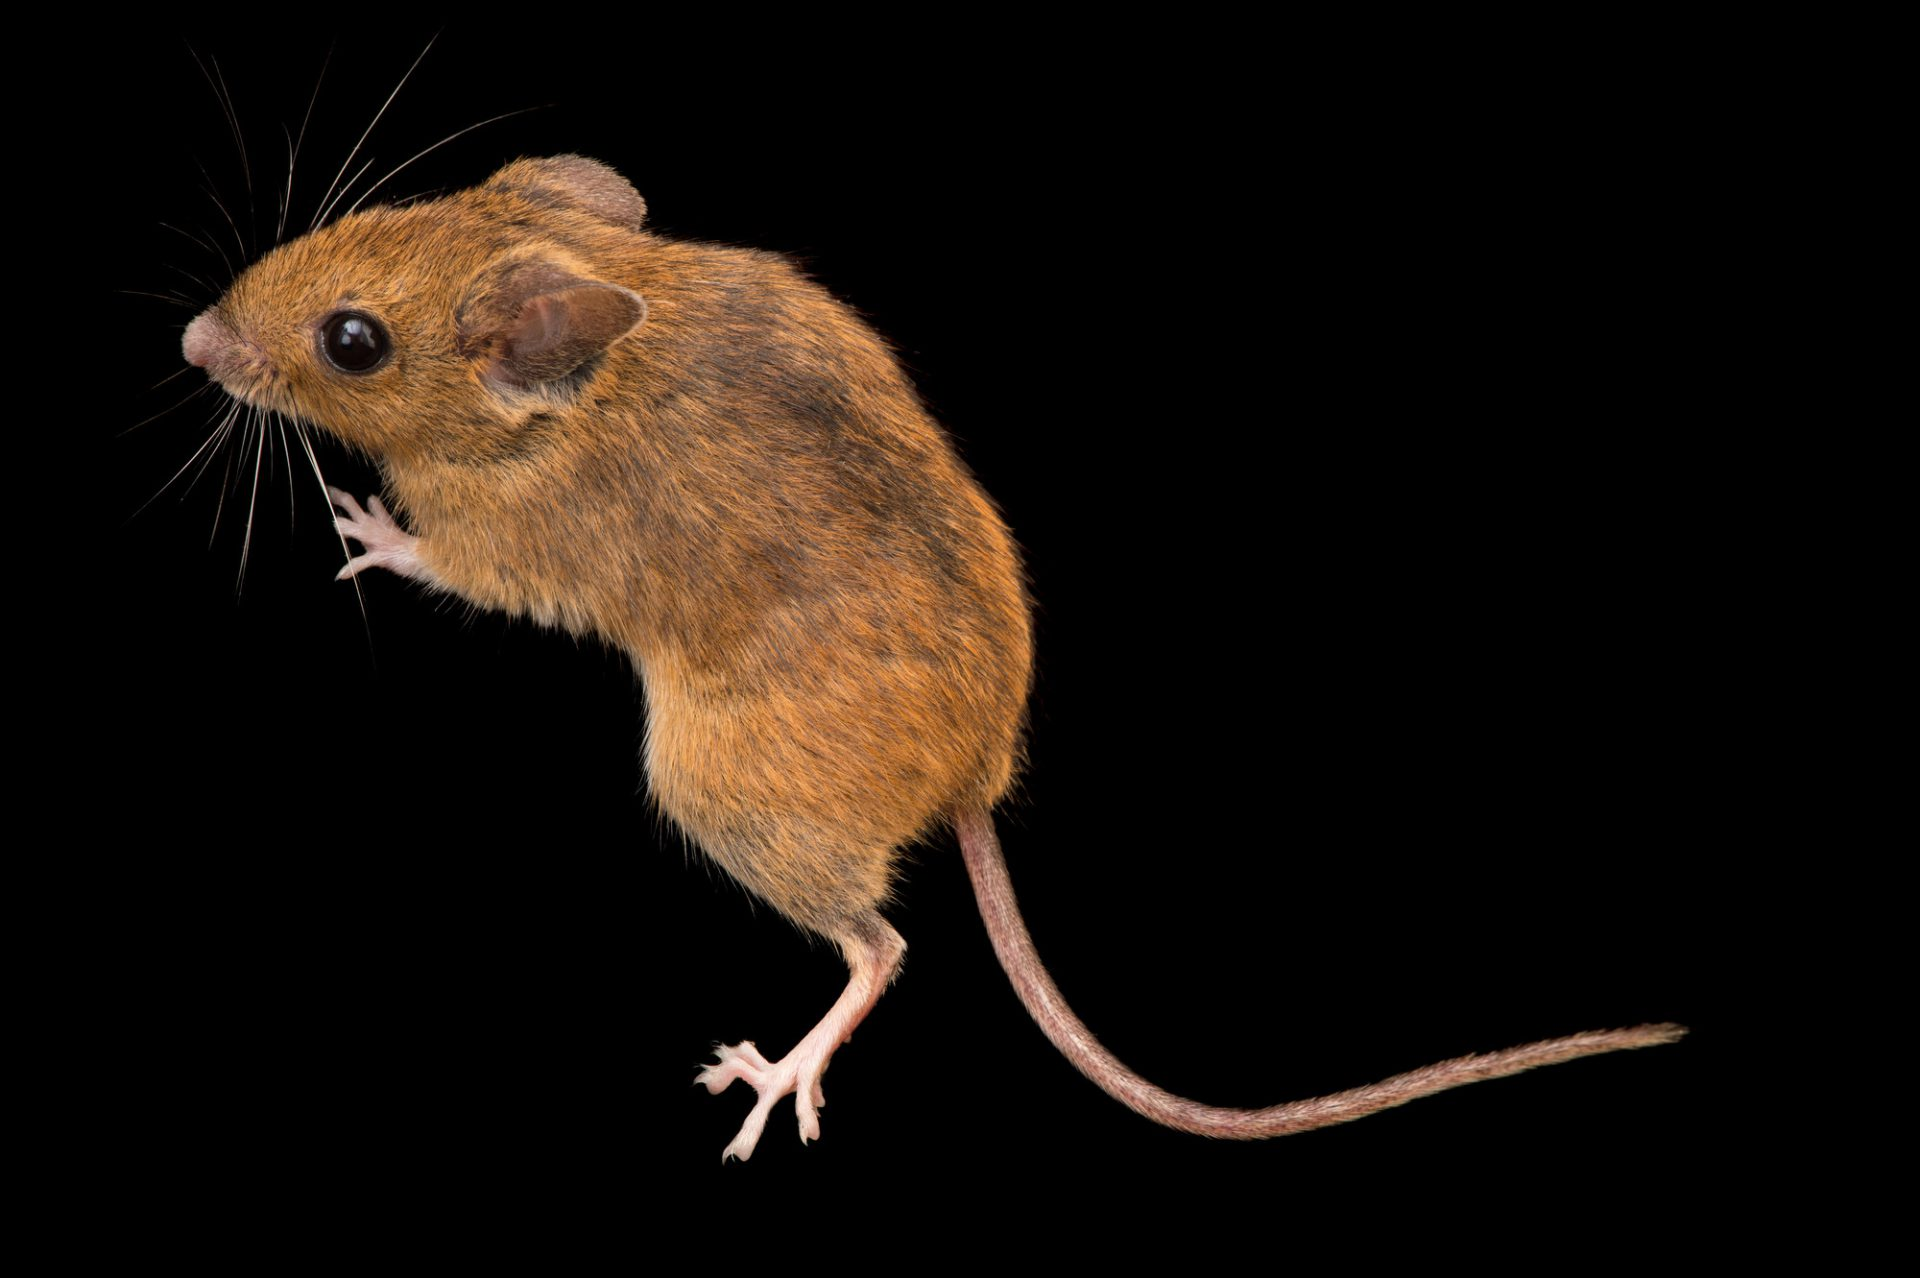 Photo: A wood mouse (Apodemus uralensis) at the Plzen Zoo in the Czech Republic.